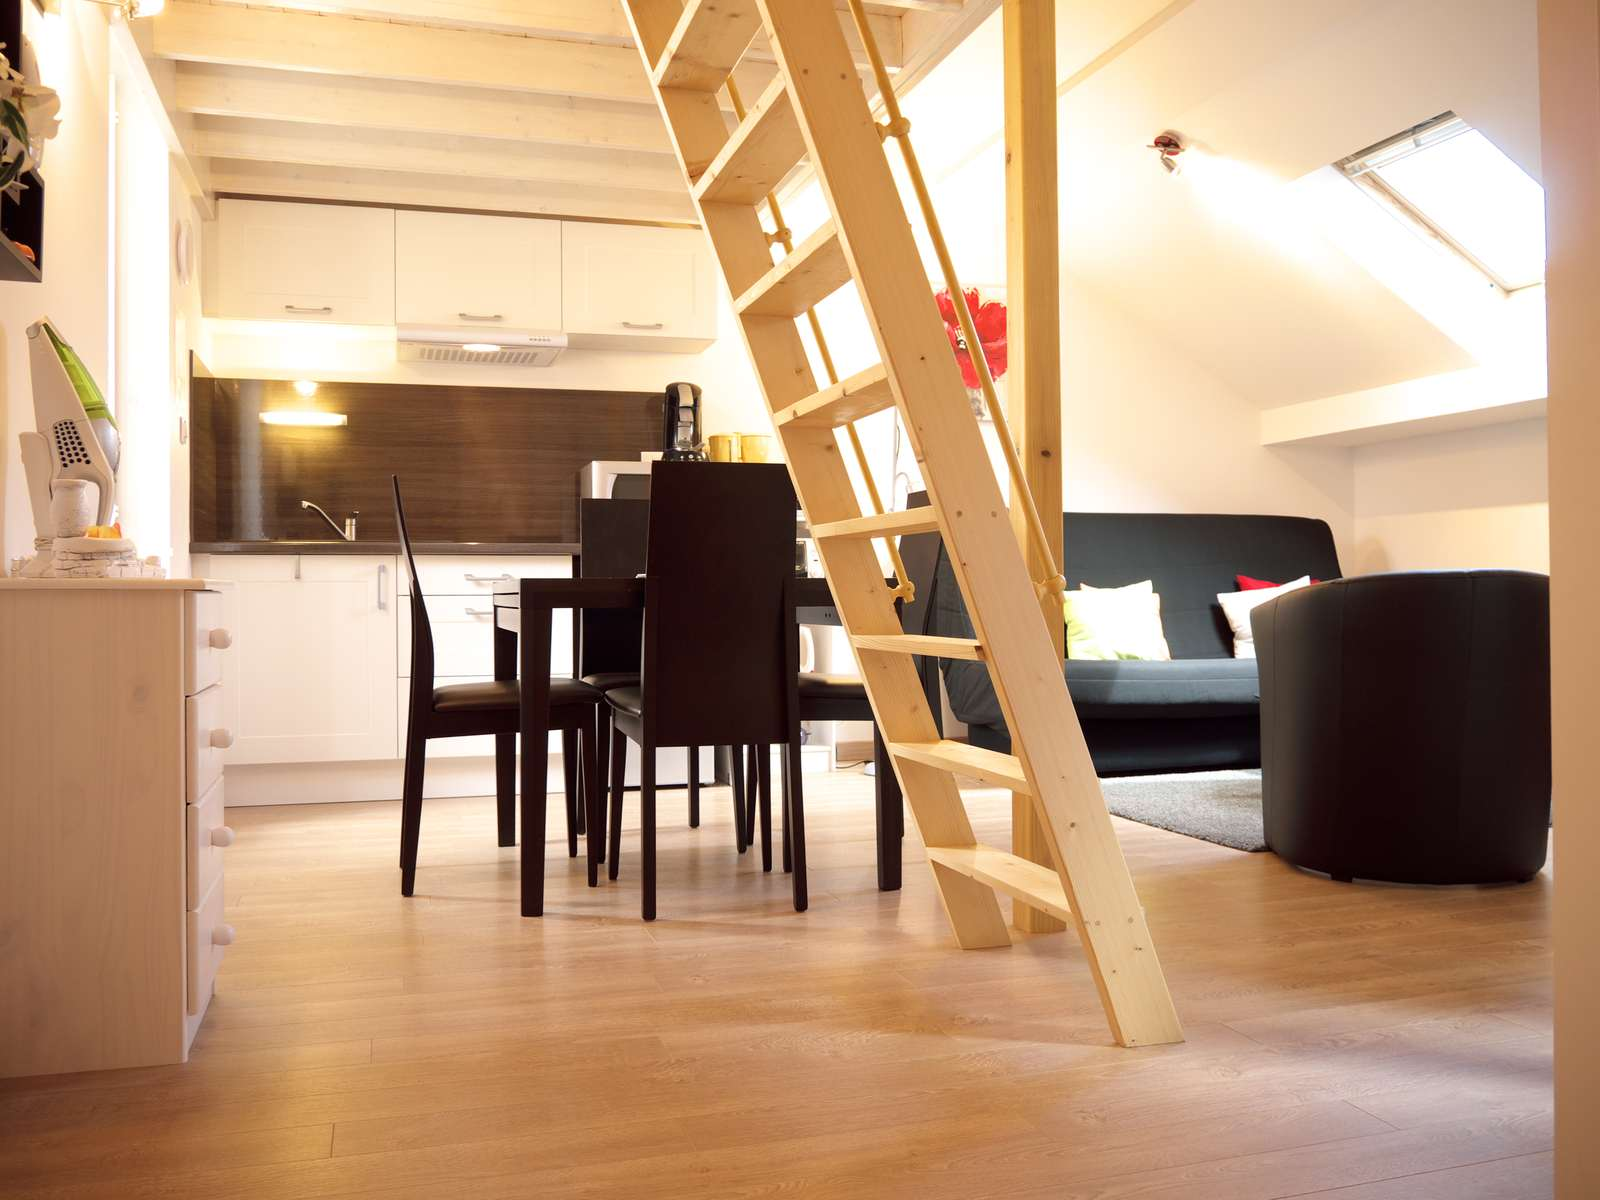 Appartement studio meubl appart h tel g te urbain for Salons nantes